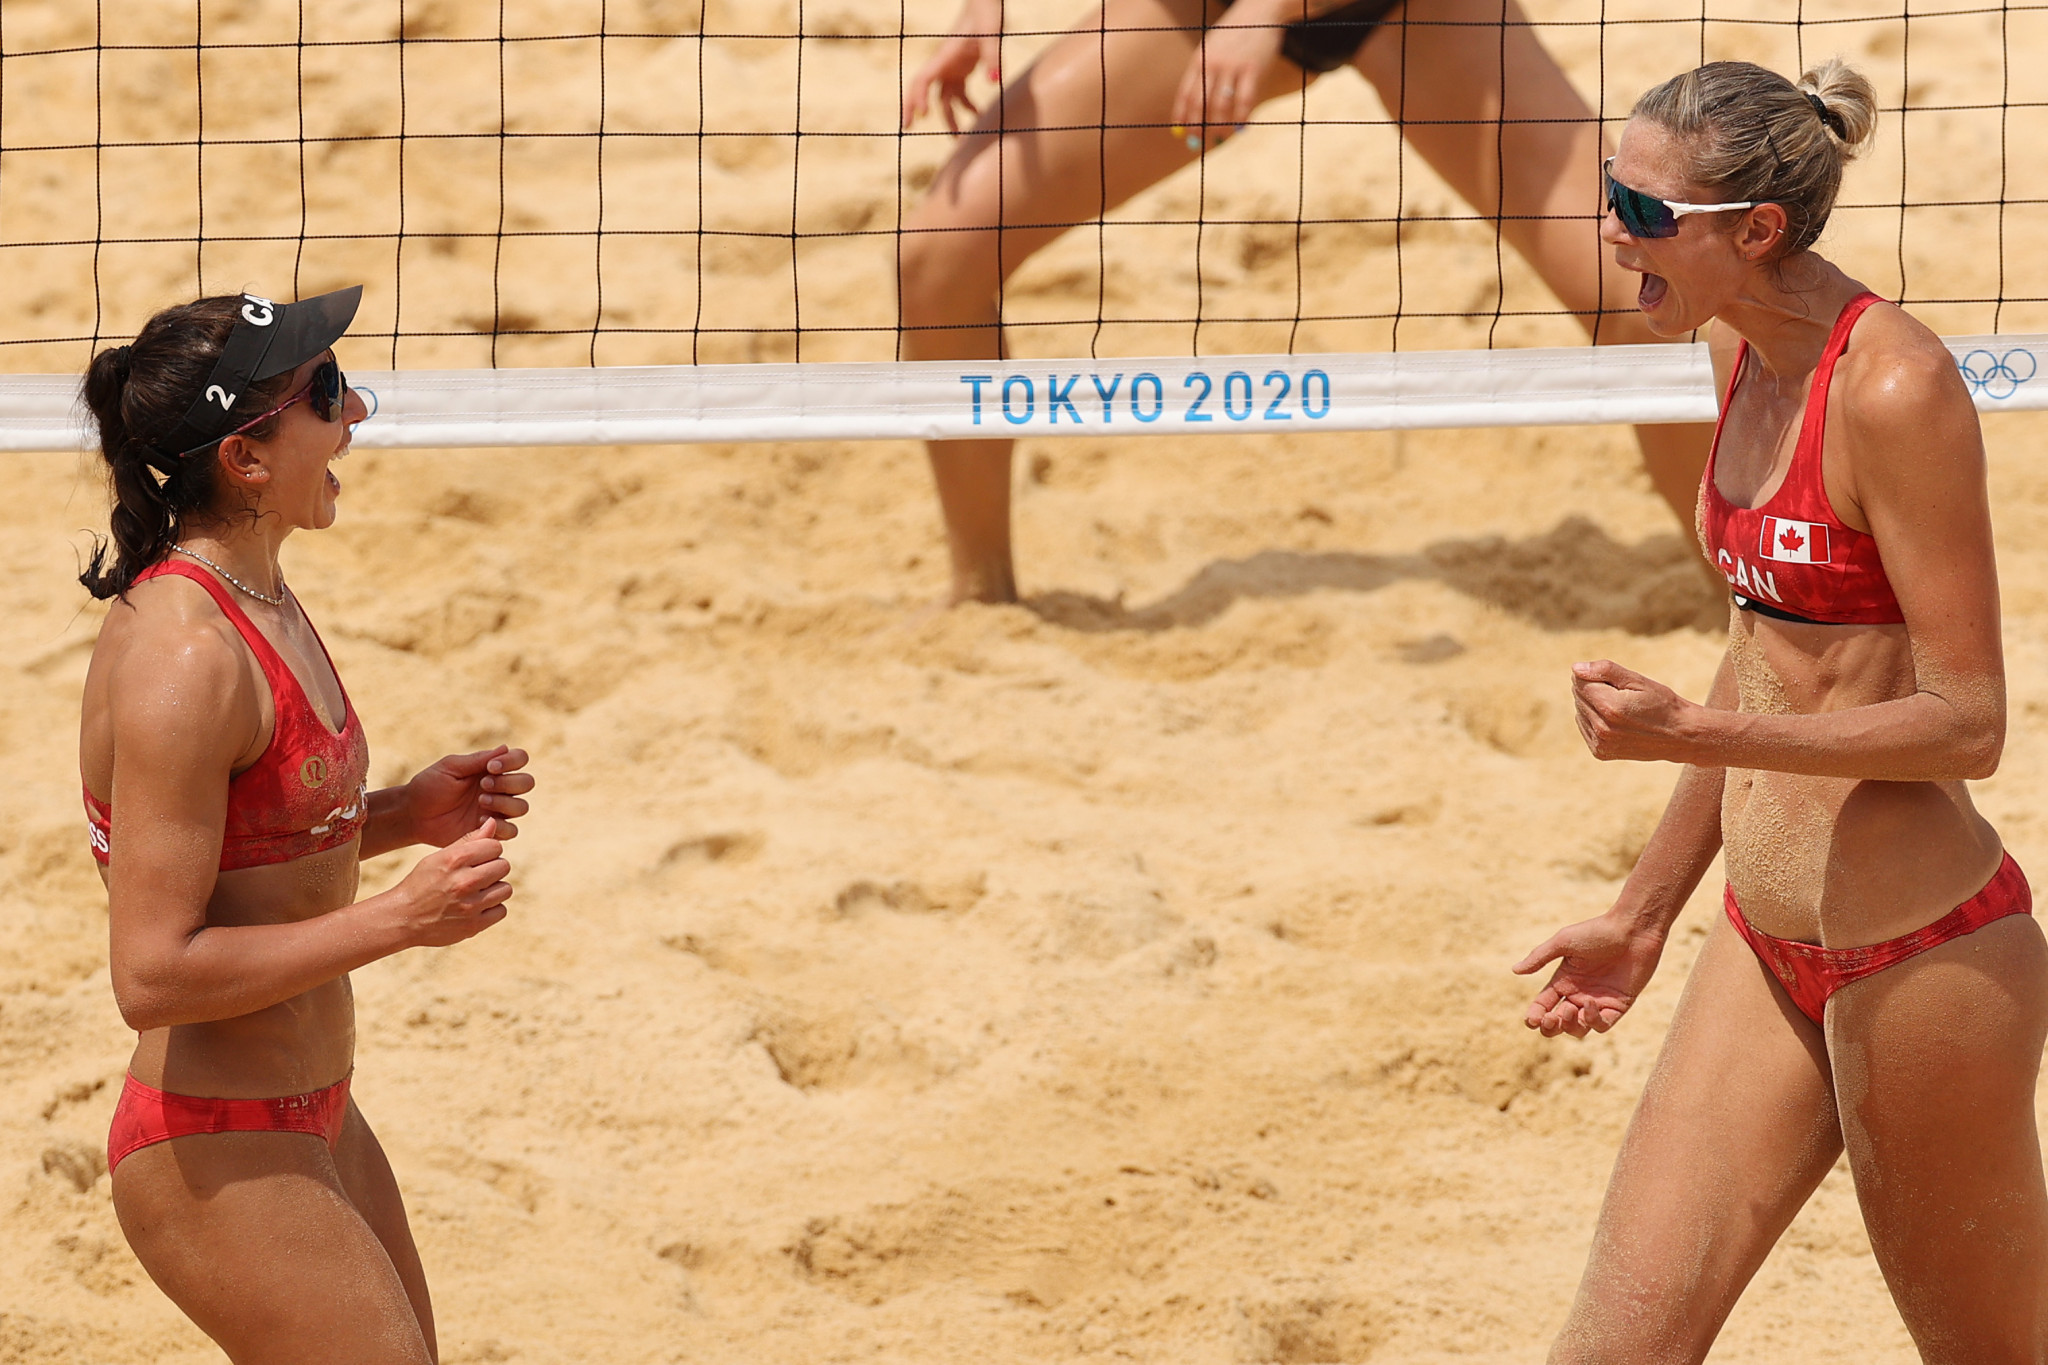 World champions topple Olympic champions at FIVB Beach Volleyball World Tour Finals